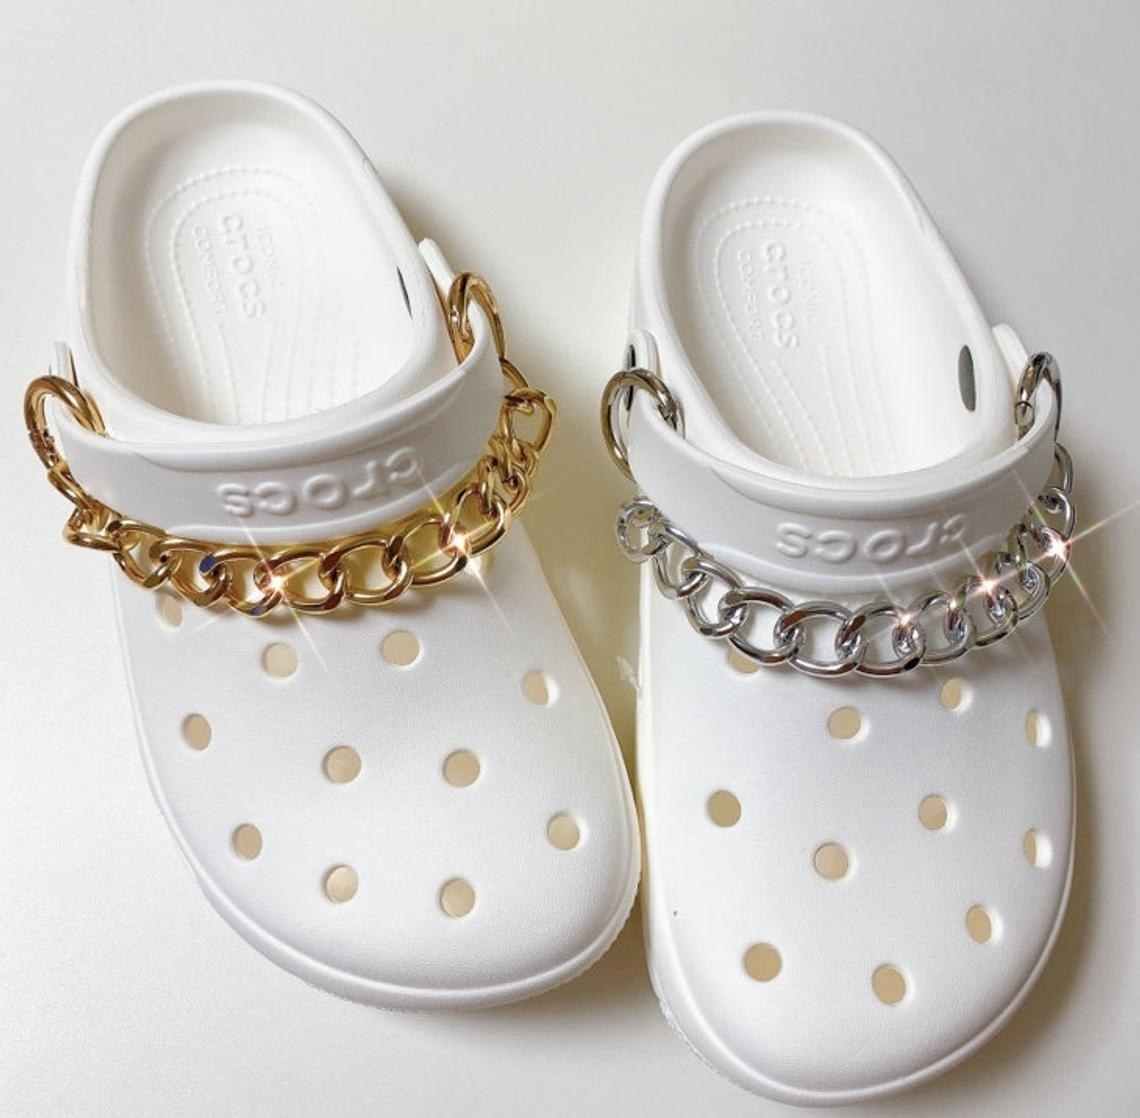 a pair of white crocs with chunky chains around the tops